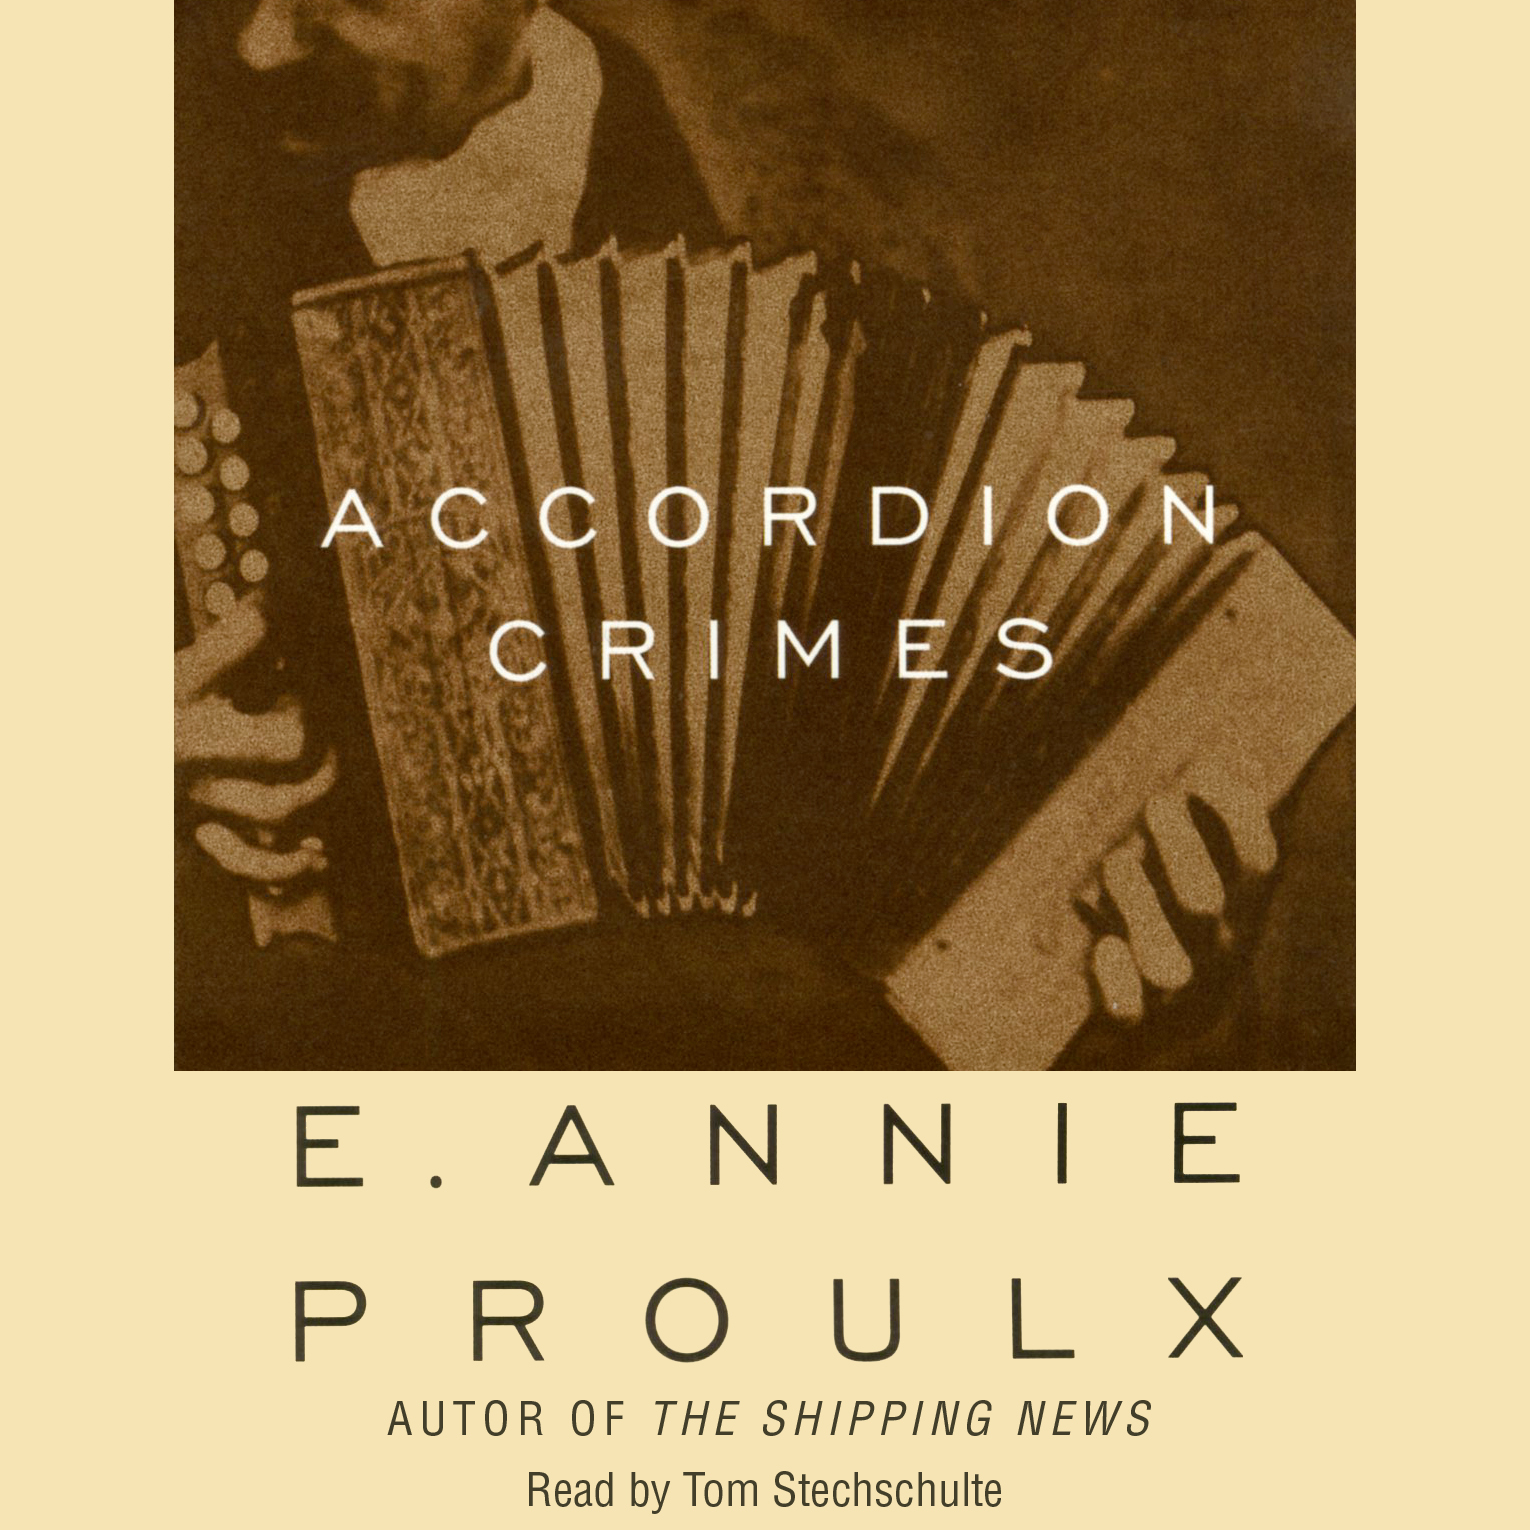 an overview of the novel accordion crimes by e annie proulx Accordion crimes e annie proulx, author, annie proulx, author simon  the novel follows a vividly realized cast of characters, whose names are as colorful as their stories: ludwig messermacher.